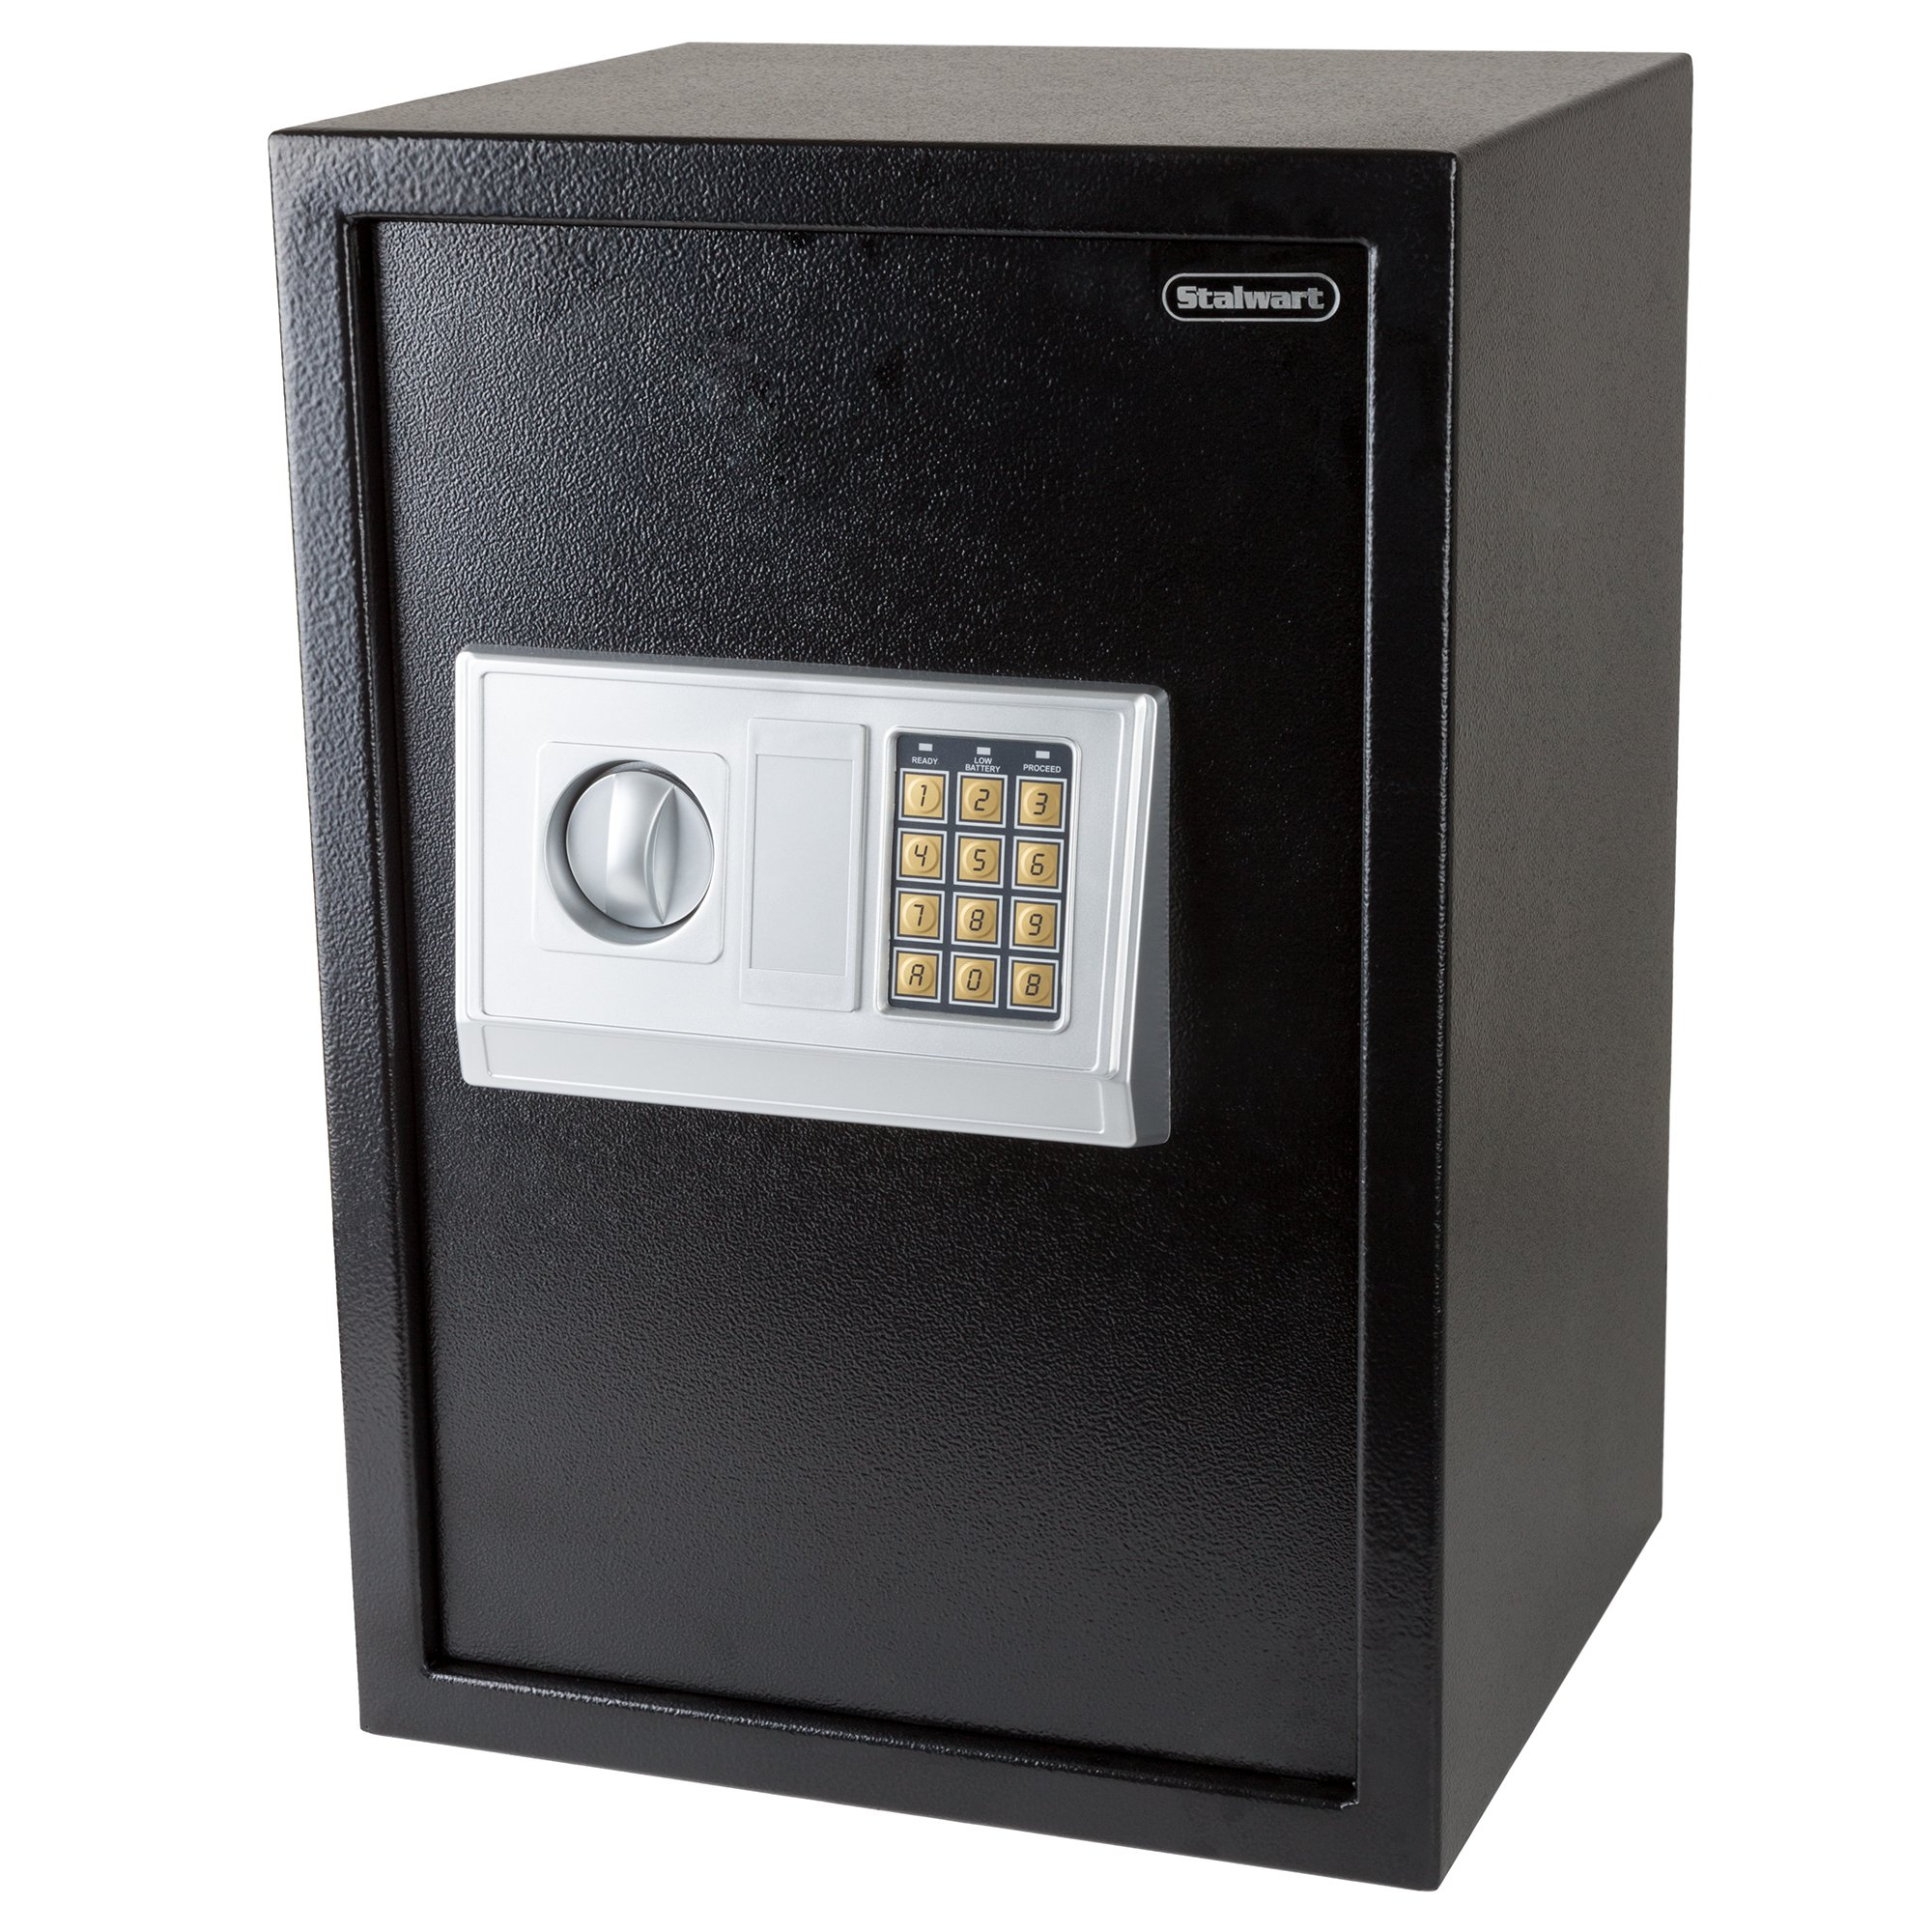 Stalwart Digital Safe-Electronic, Extra-Large, Steel, Keypad, 2 Manual Override Keys-Protect Money, Jewelry, Passports-for Home or Business by Stalwart